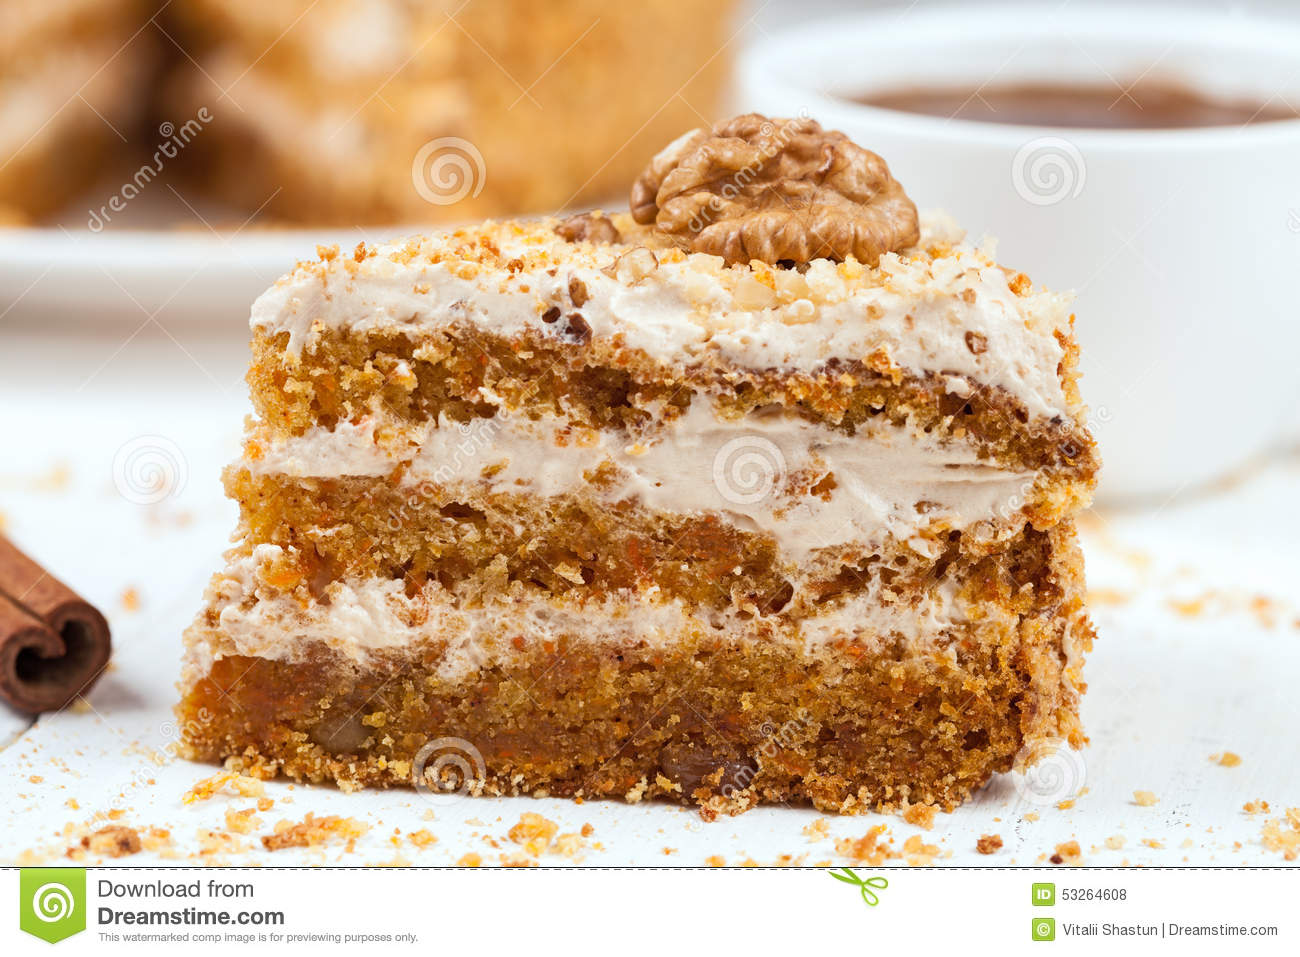 Calories In A Piece Of Carrot Cake